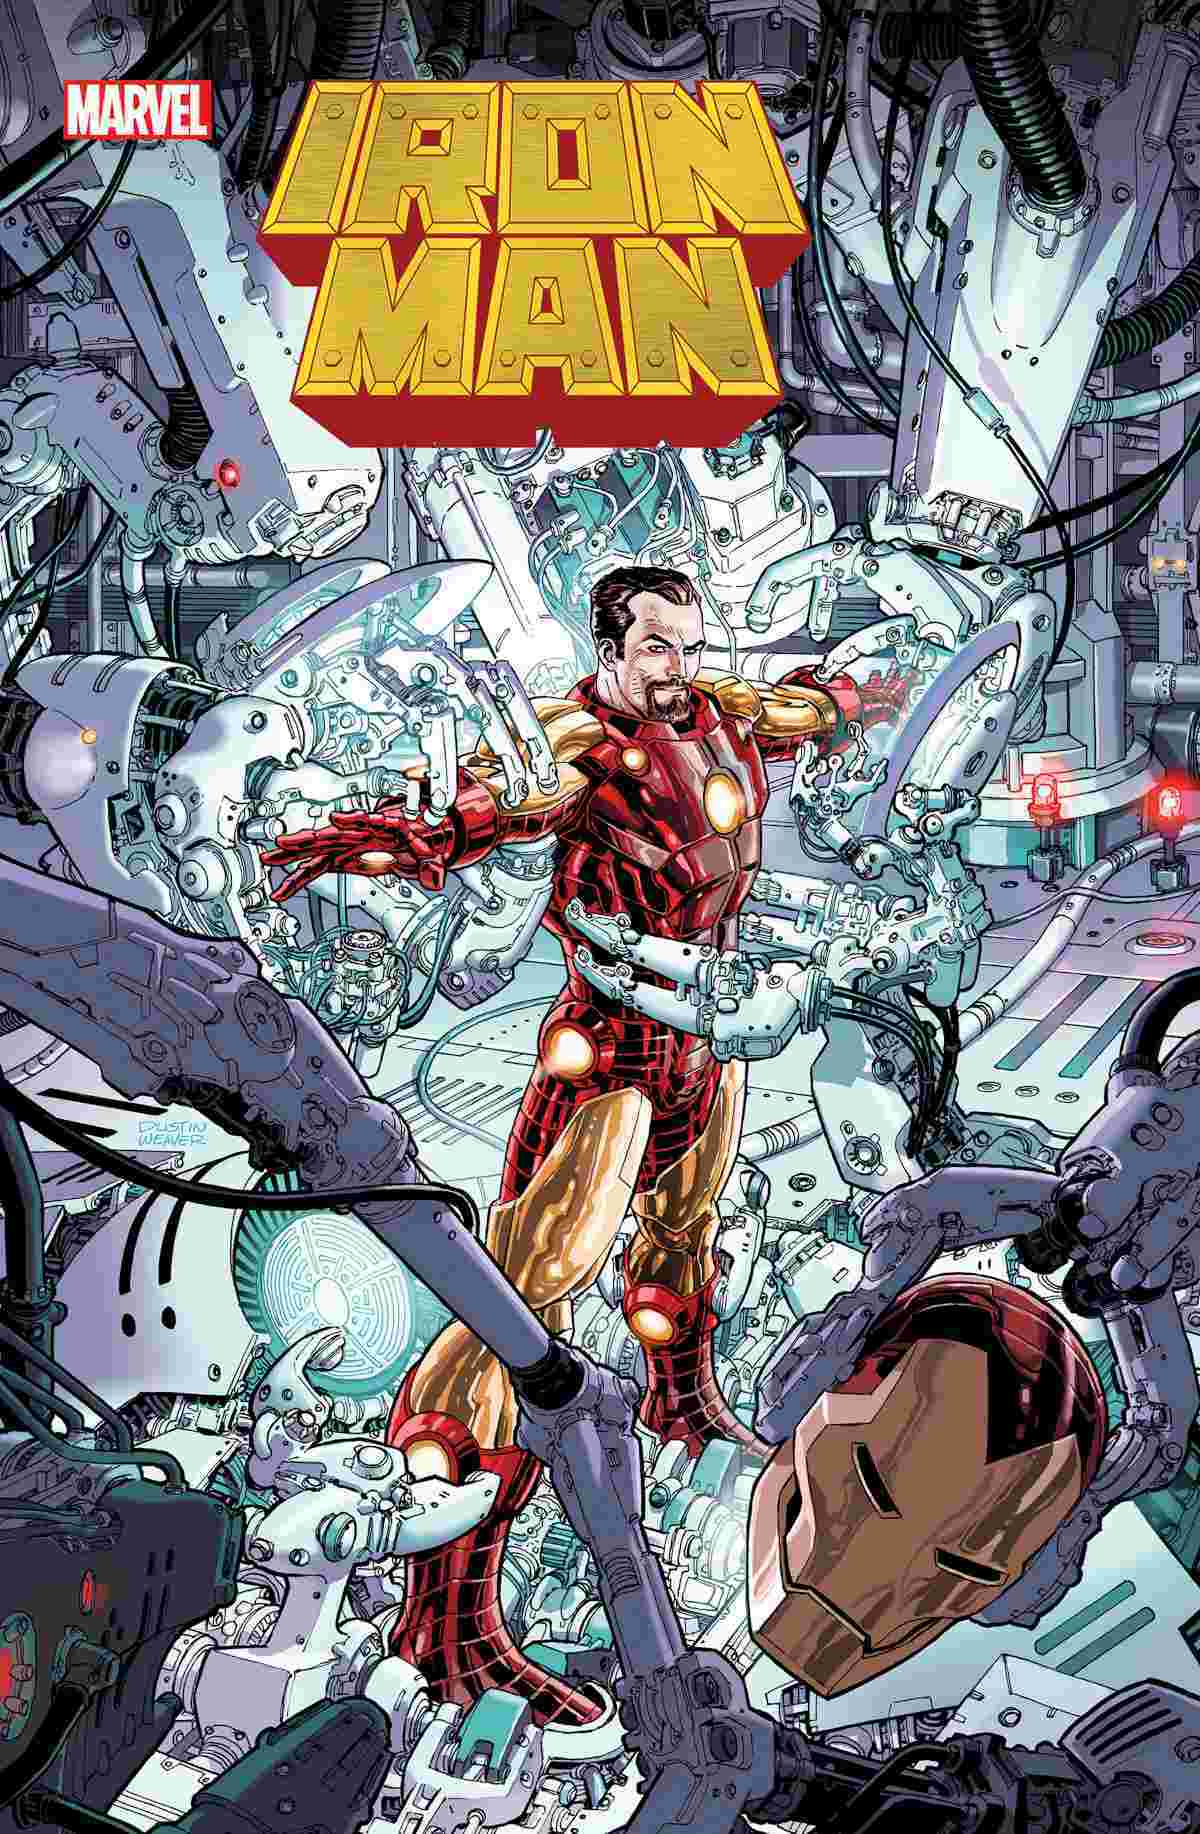 Iron Man #1 2020 Dustin Weaver Variant Cover